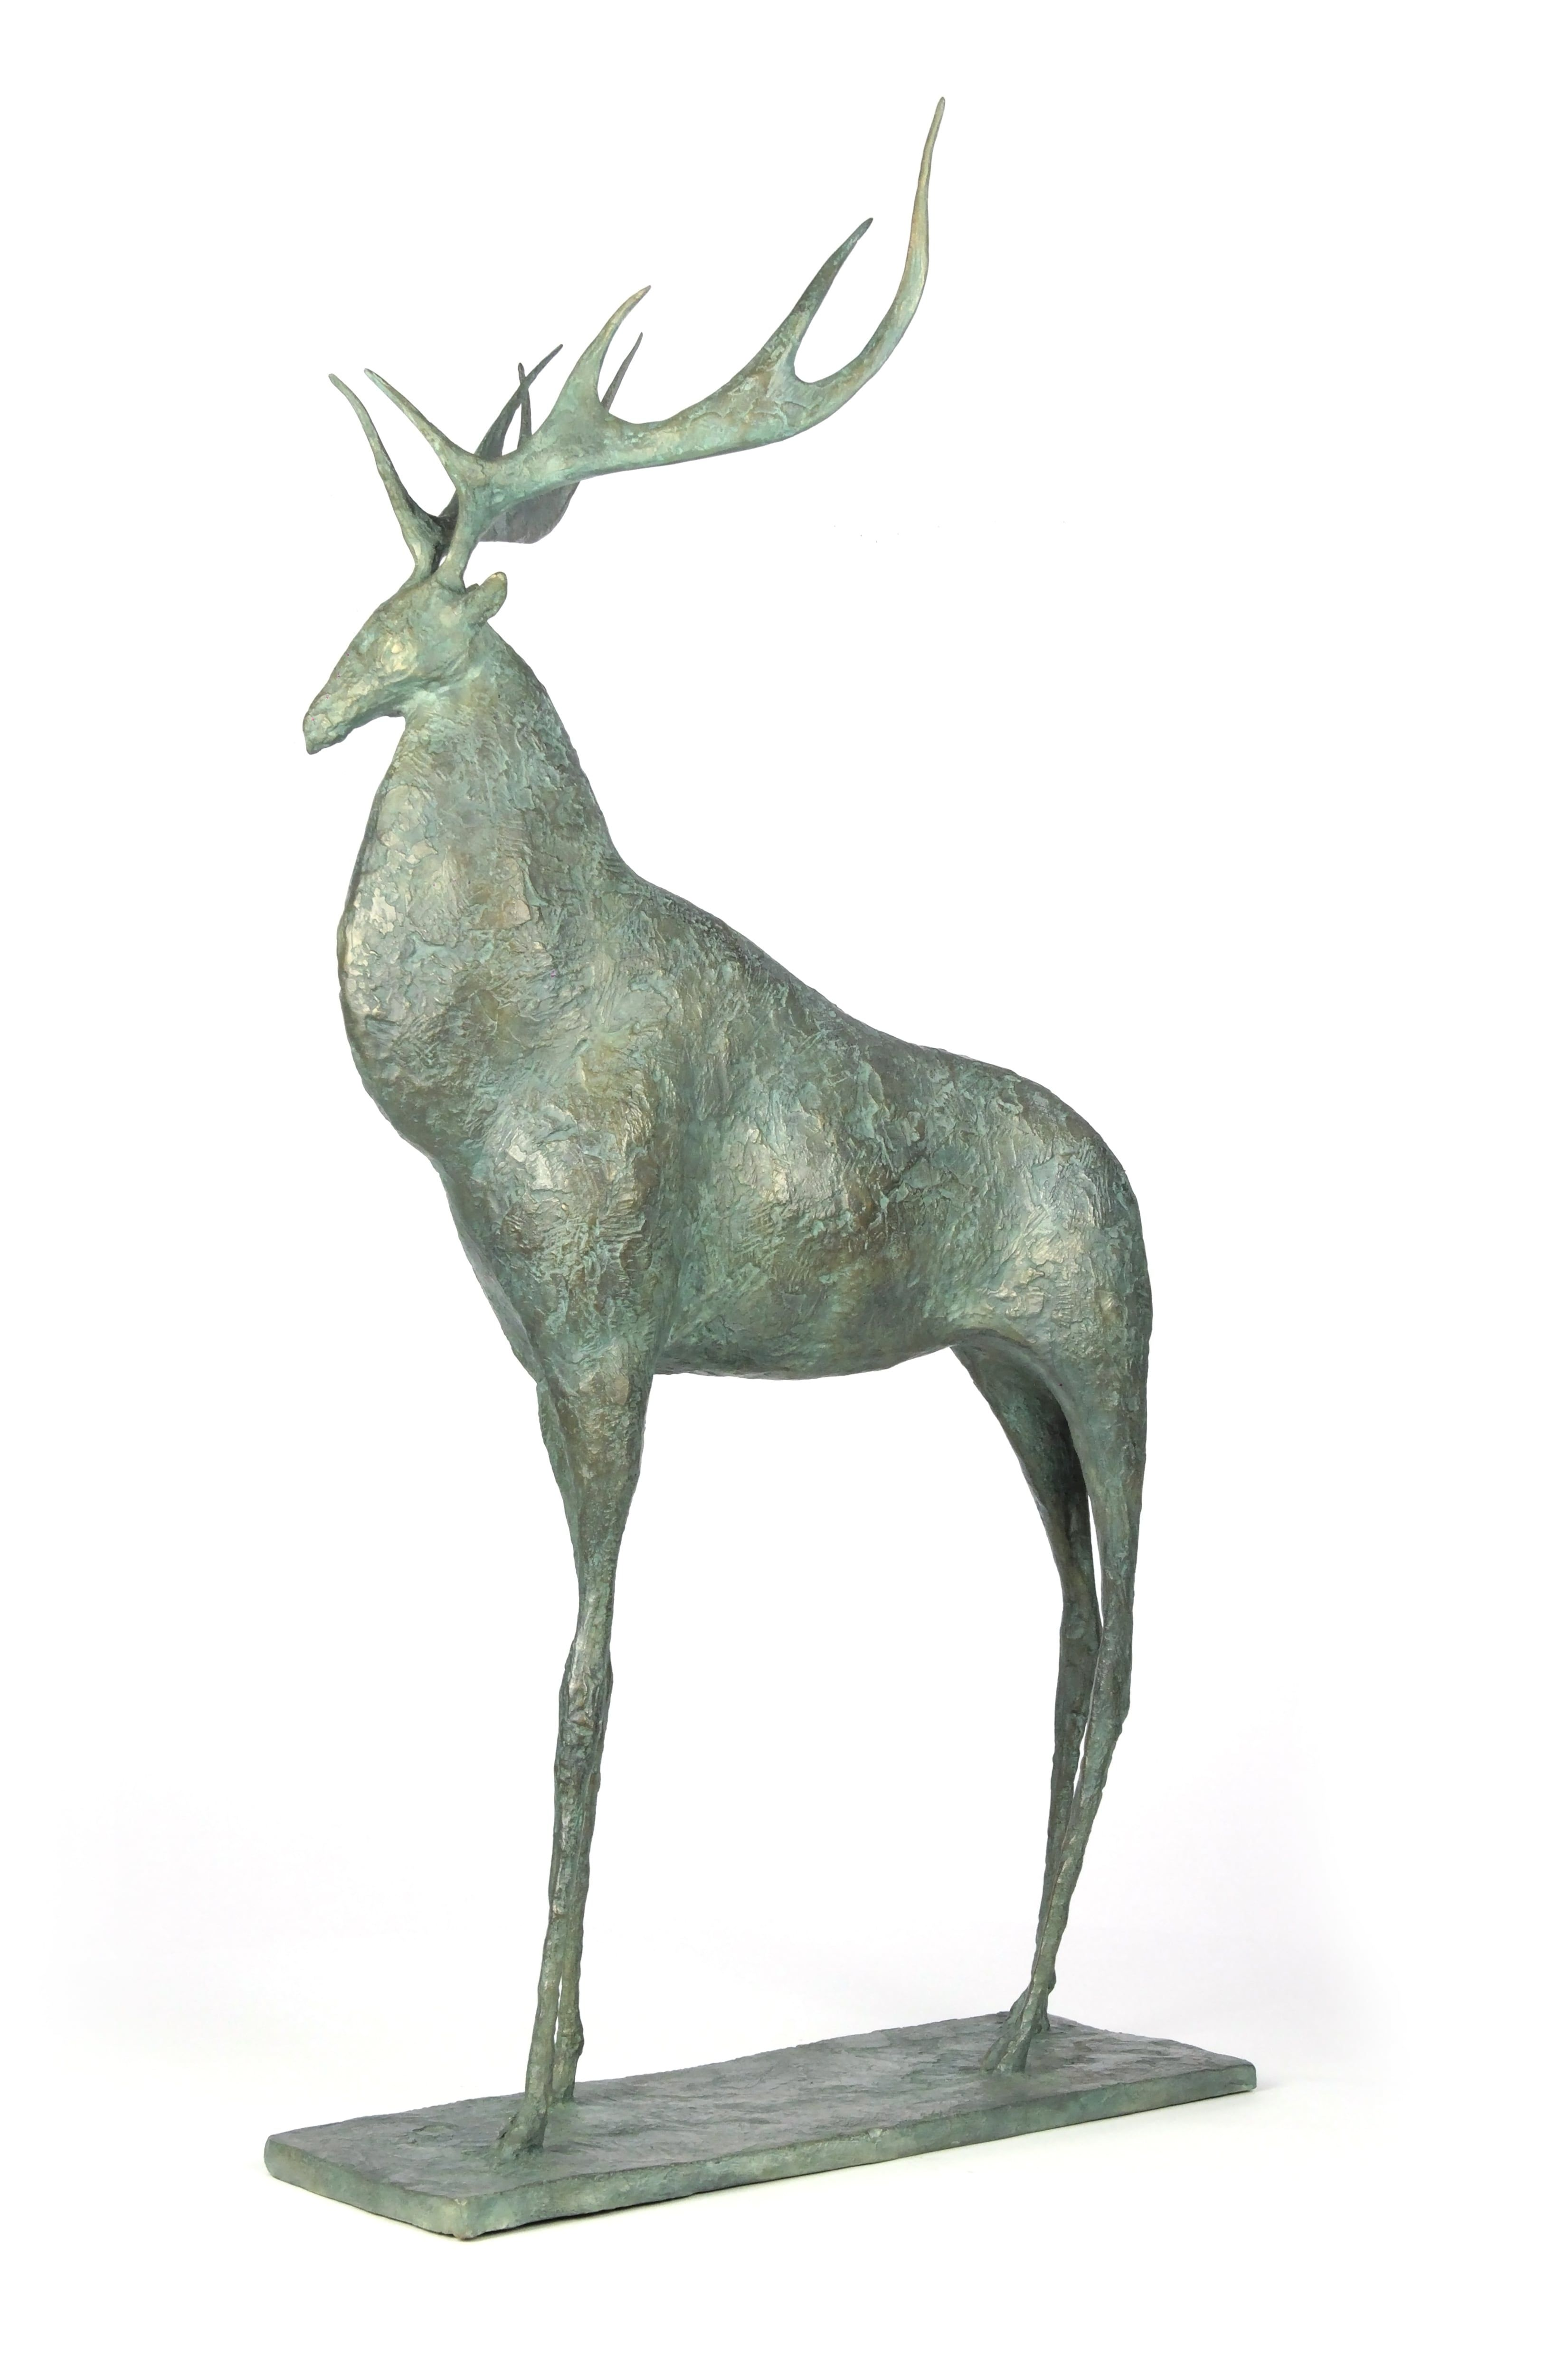 Cerf I,Pierre Yermia,Sculpture, detail 1